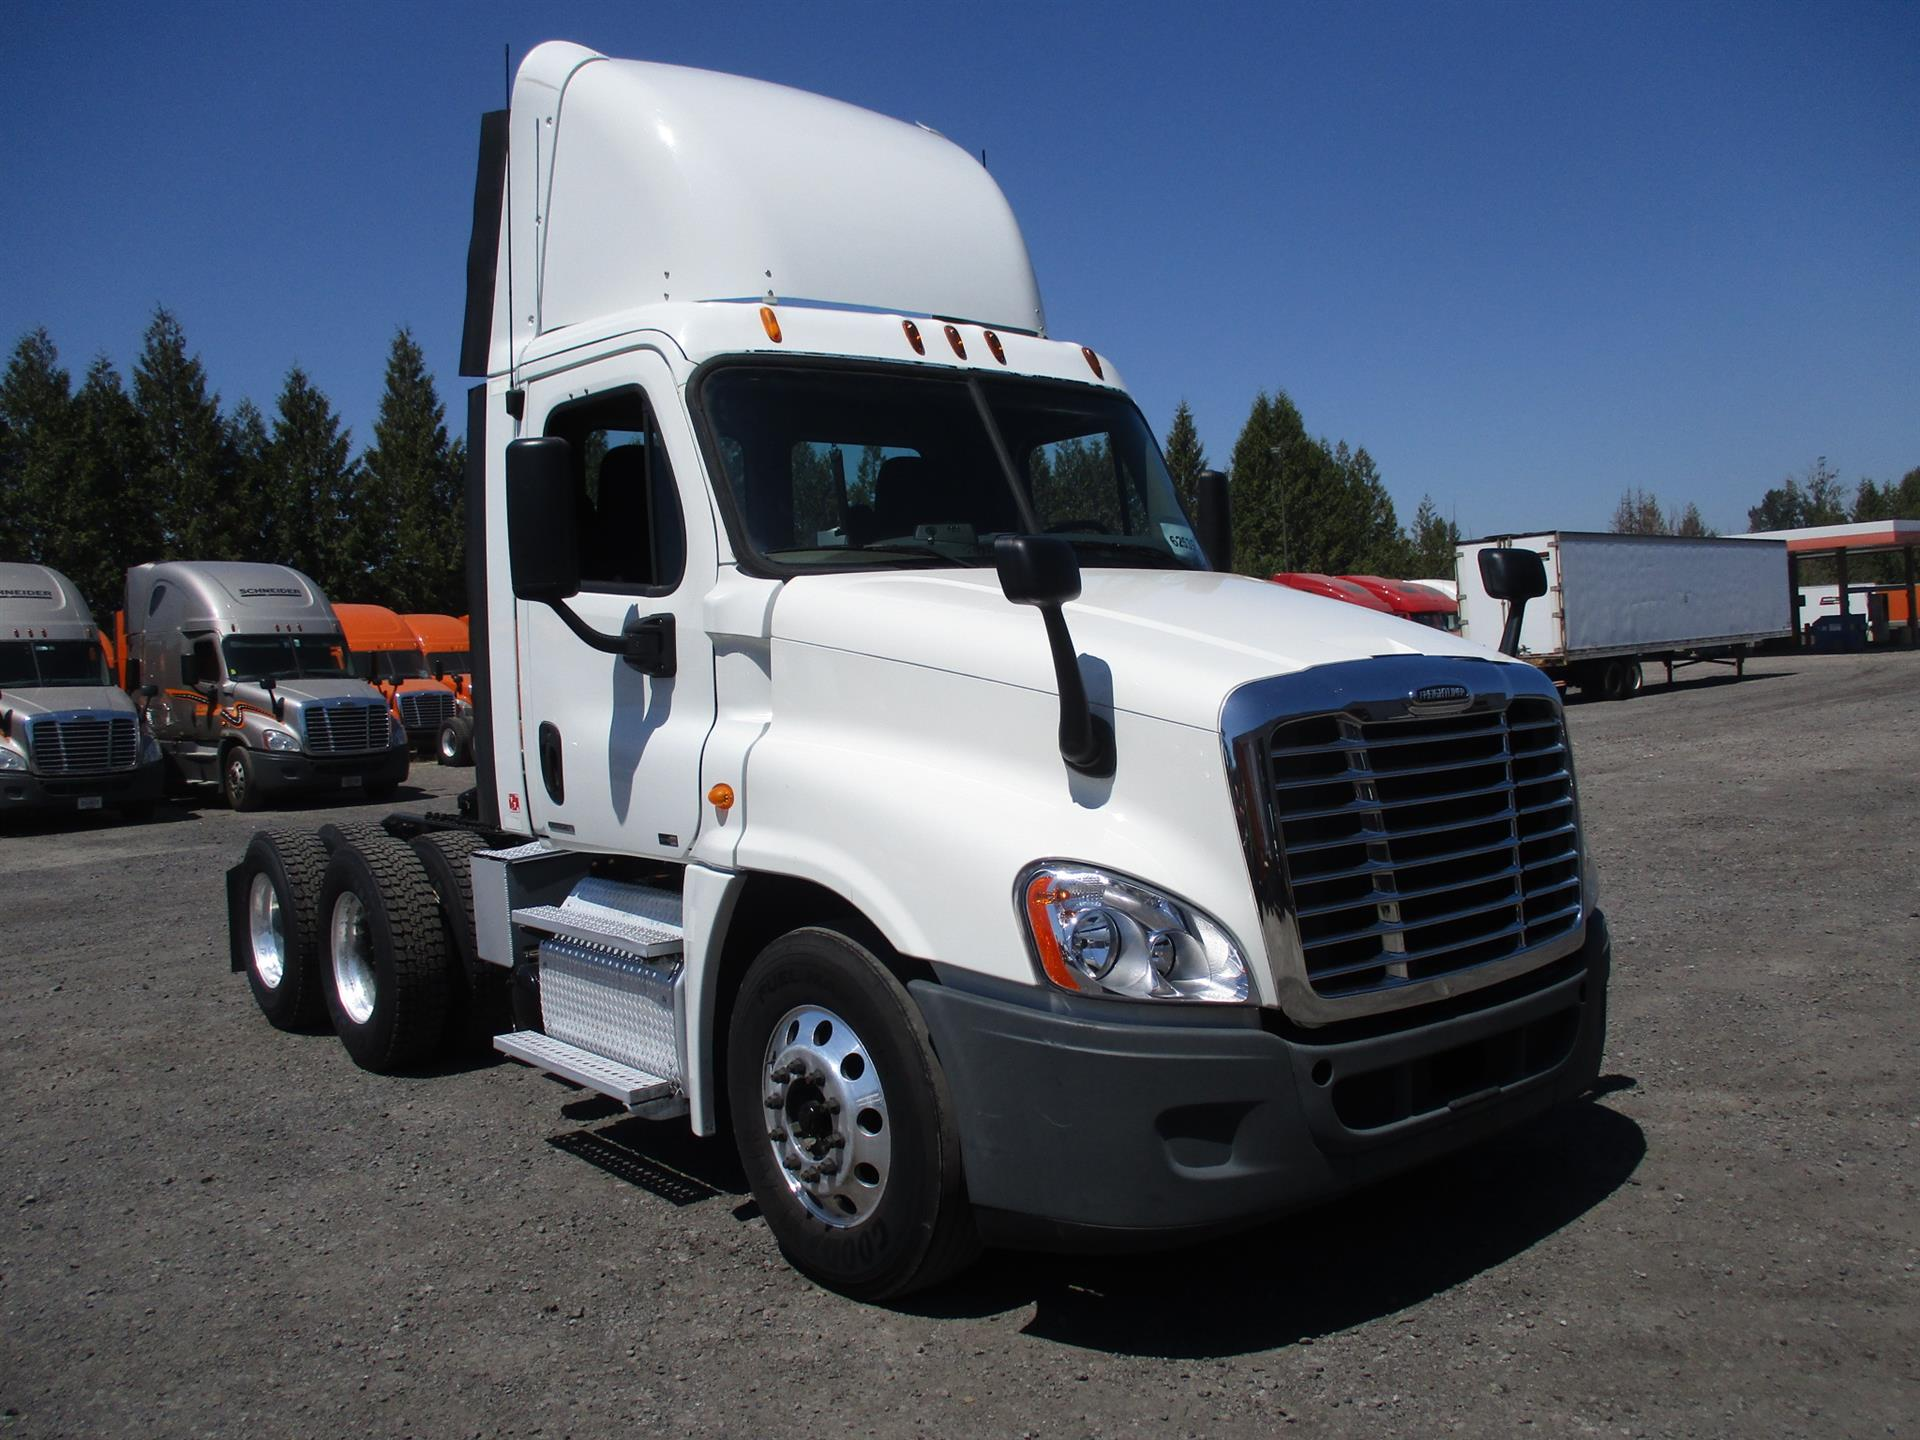 USED 2011 FREIGHTLINER CASCADIA DAYCAB TRUCK #128842